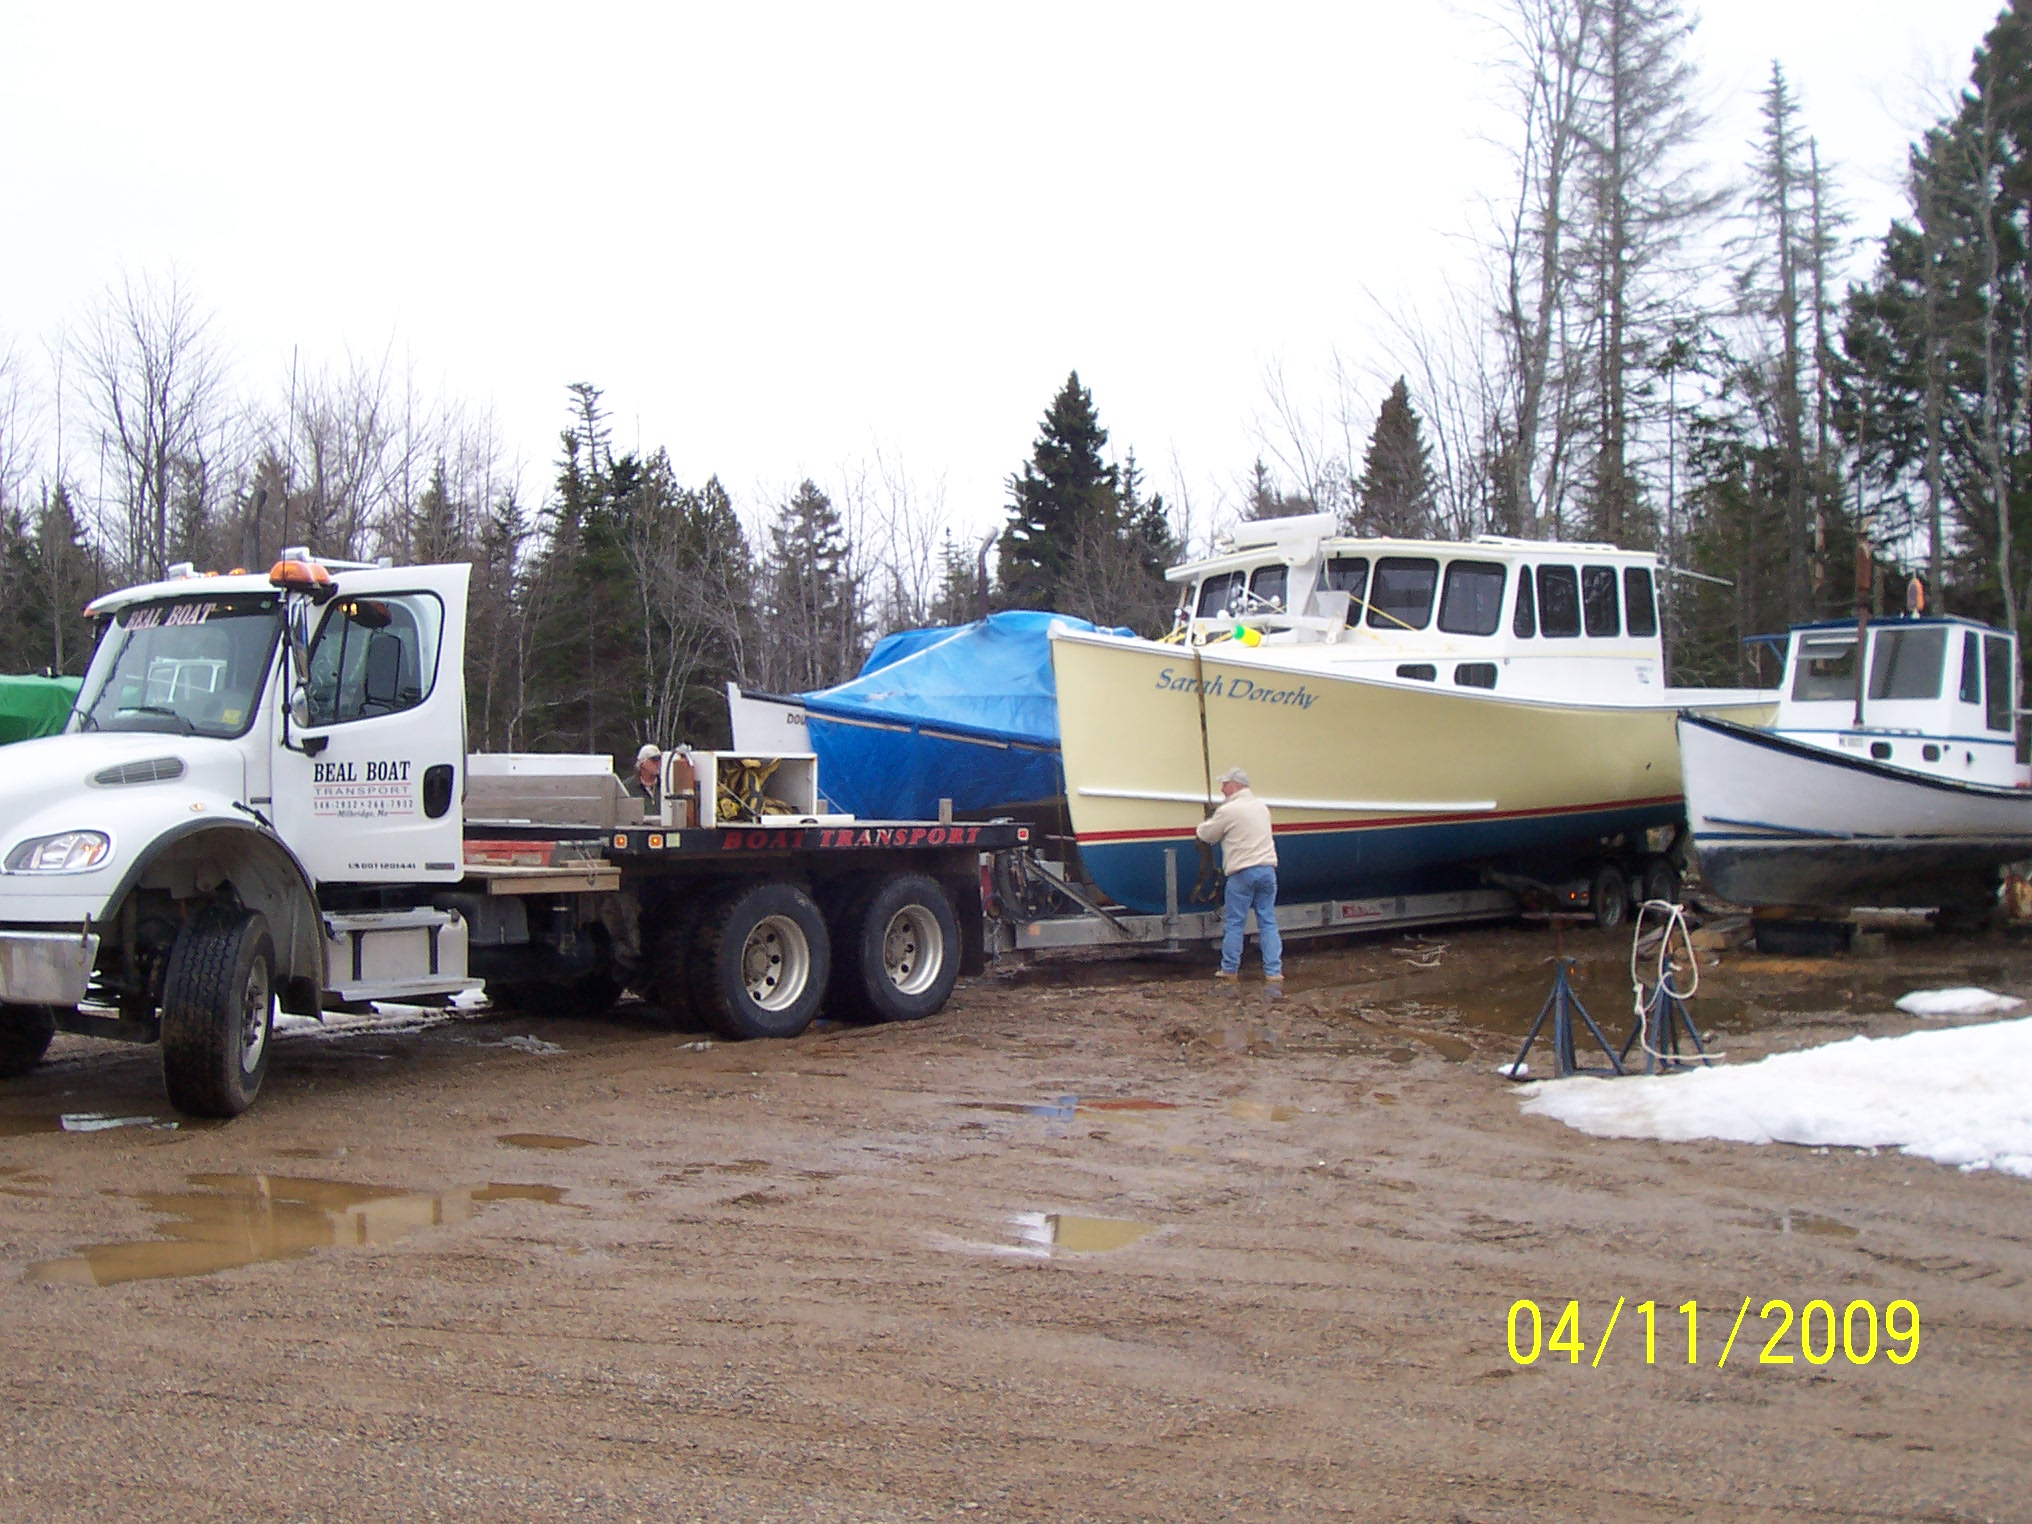 Hauling the boat to the boat launch